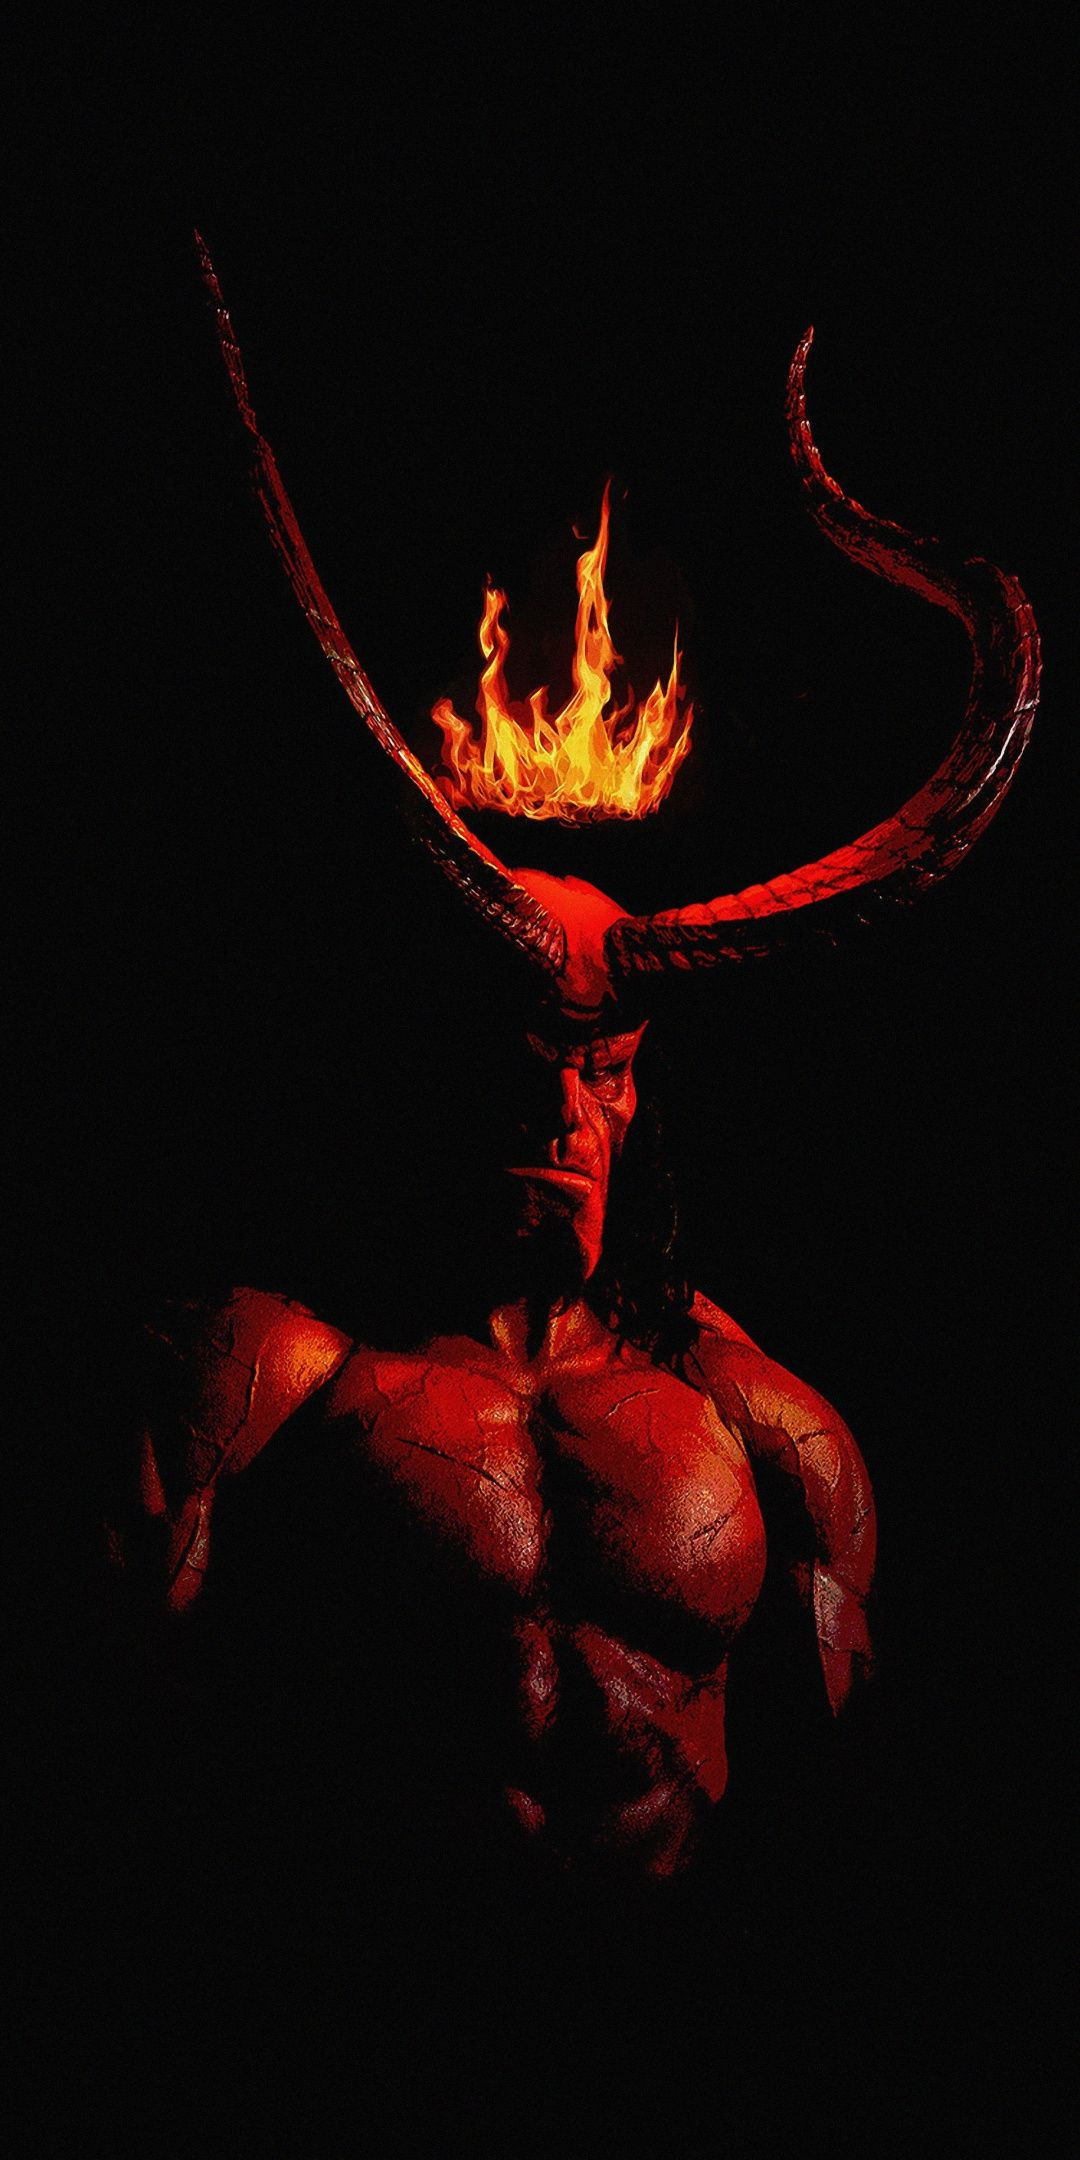 Hellboy 2019 Movie Horns Fire Crown Poster Wallpaper Hellboy Wallpaper Hellboy Art Gothic Wallpaper